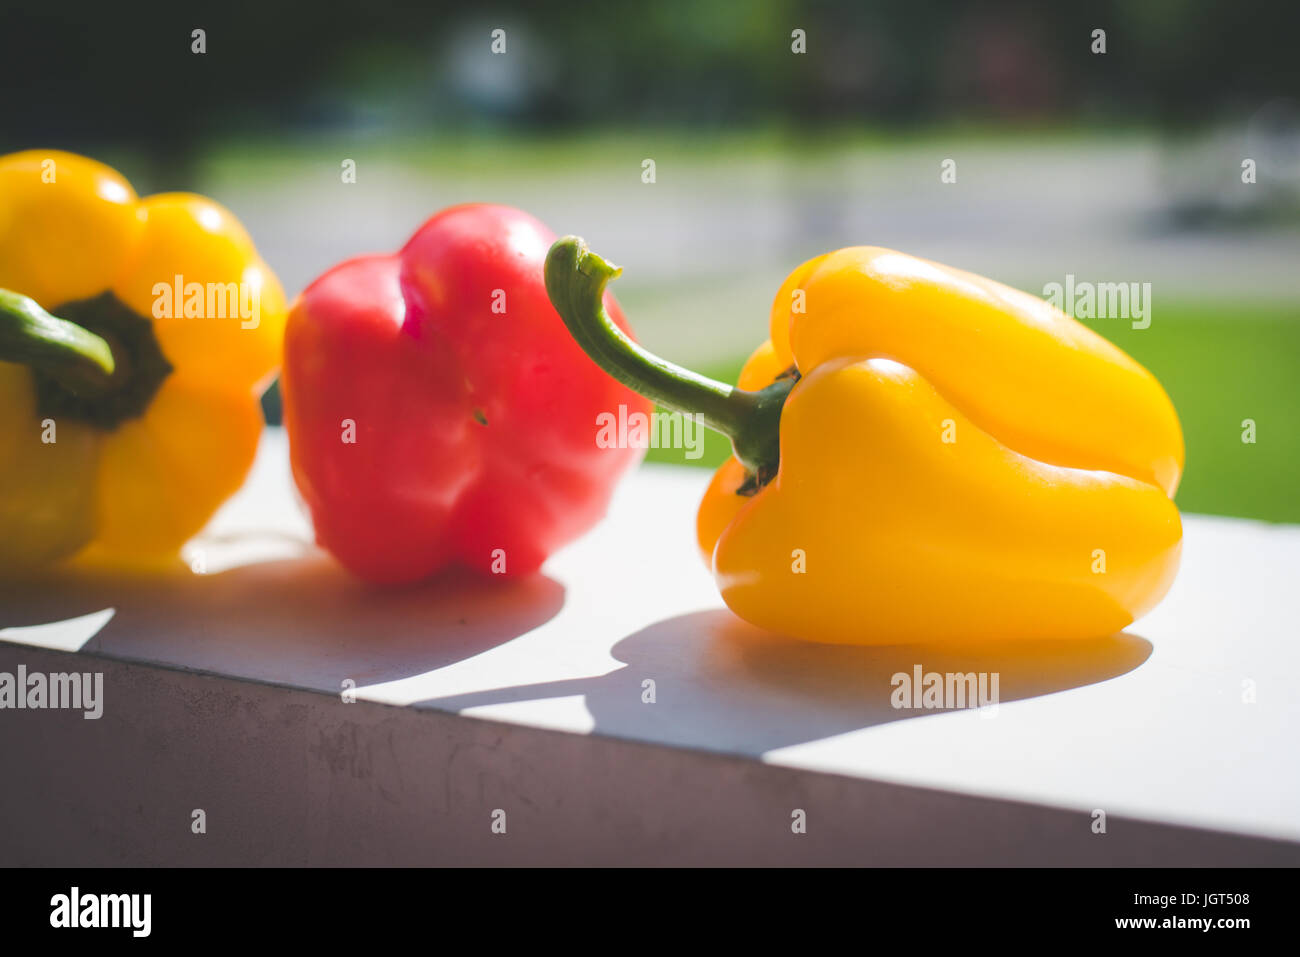 Red and yellow peppers sit on a counter in the sunlight. - Stock Image